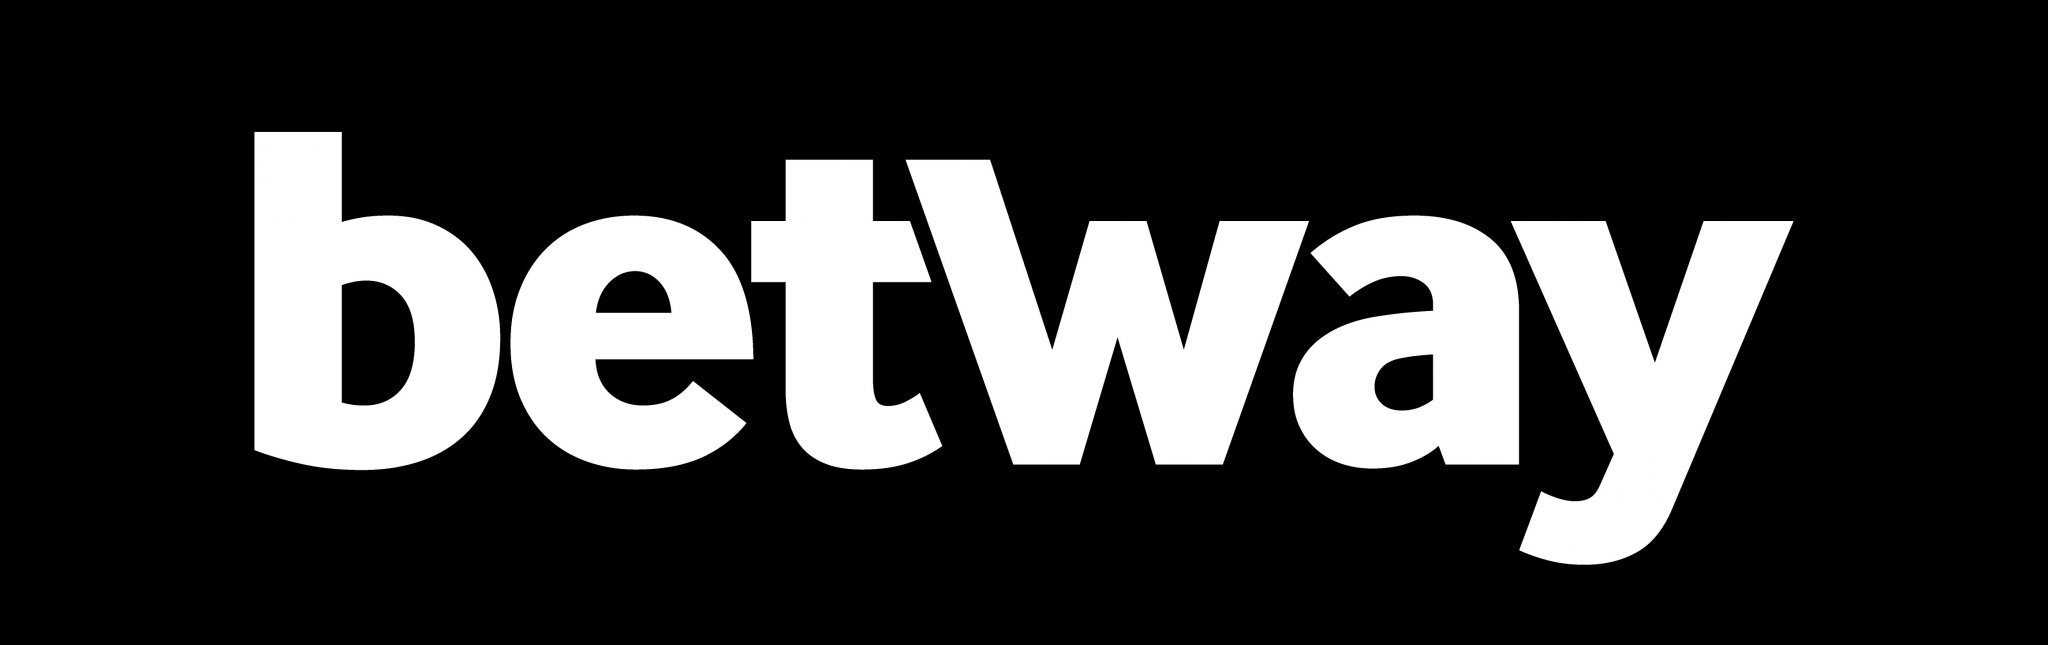 betway casino register